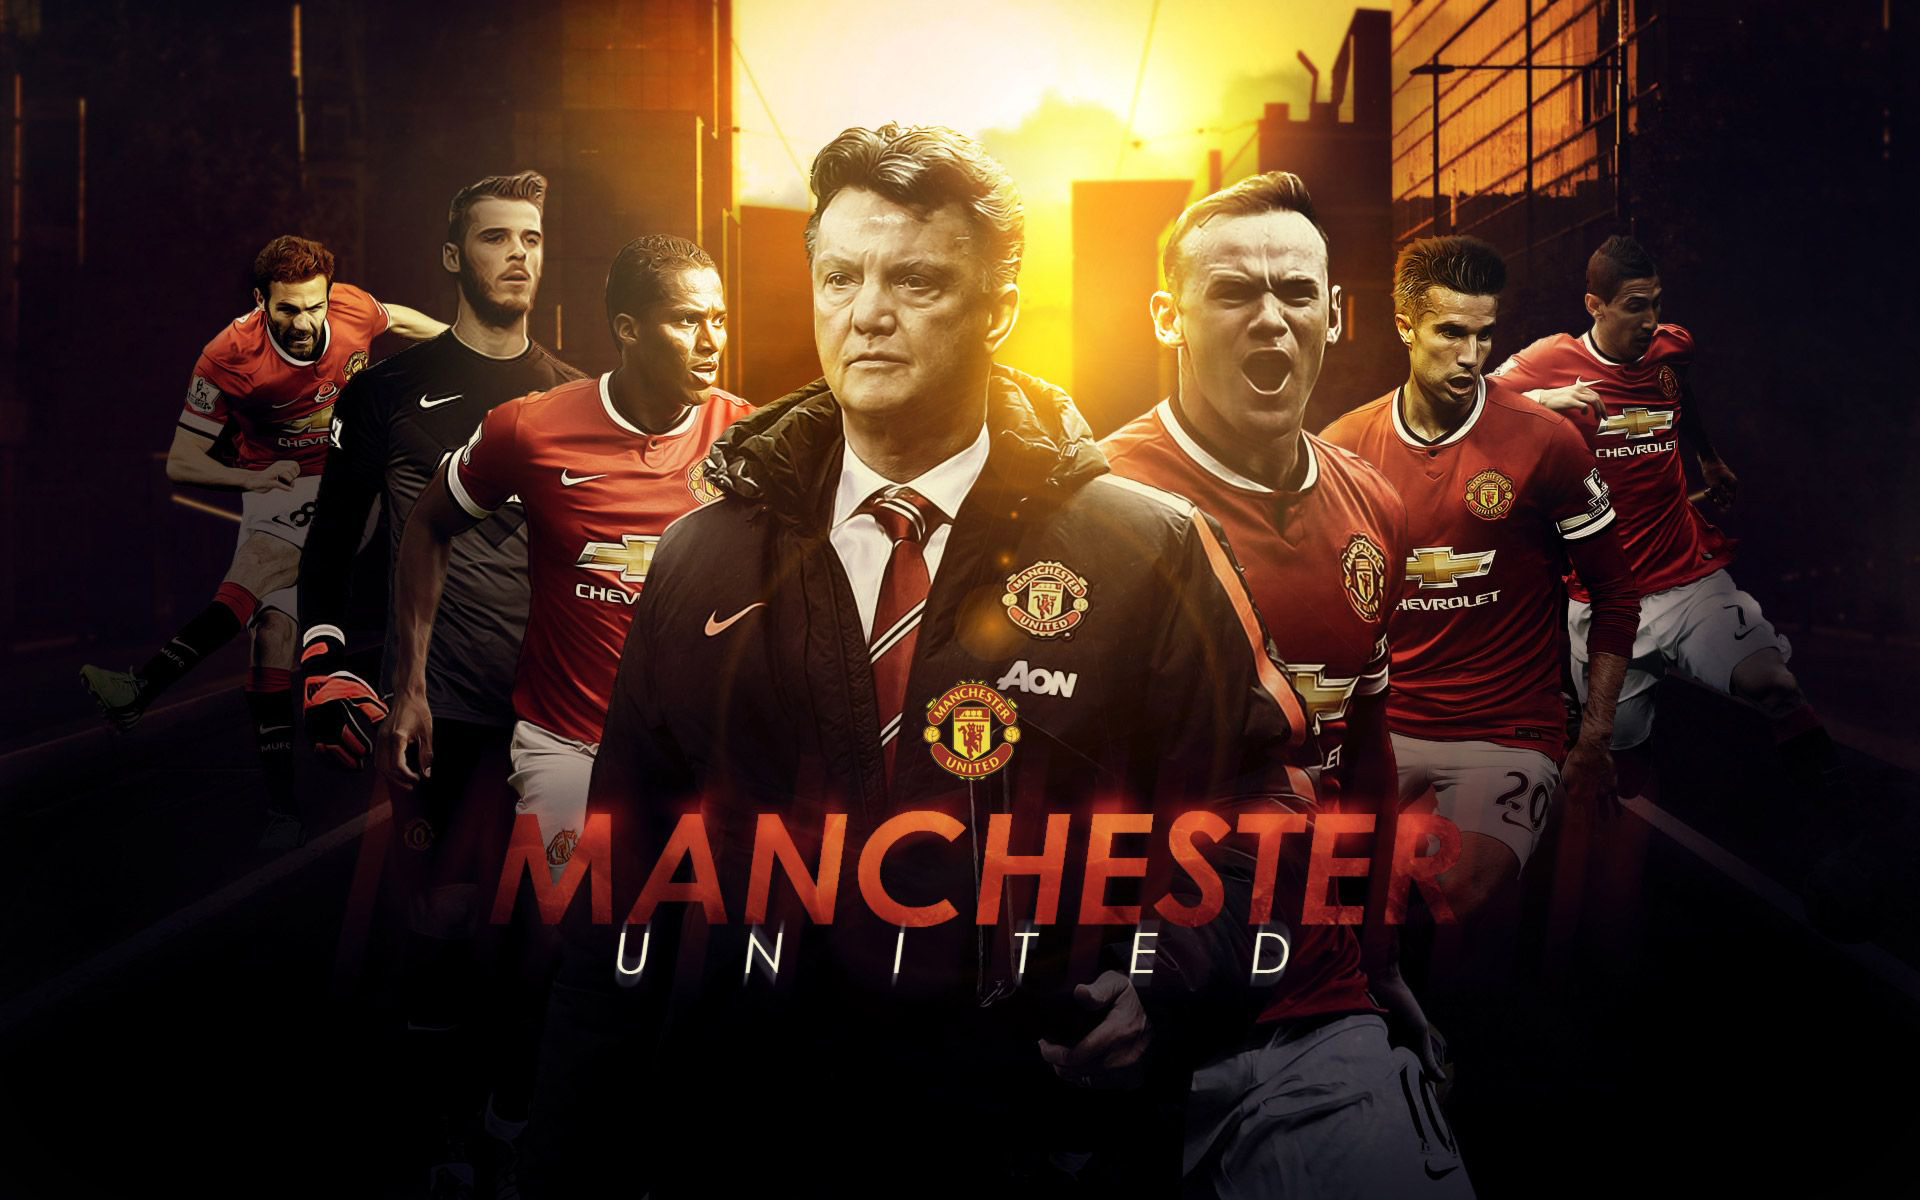 Manchester United Wallpapers HD 1920x1200